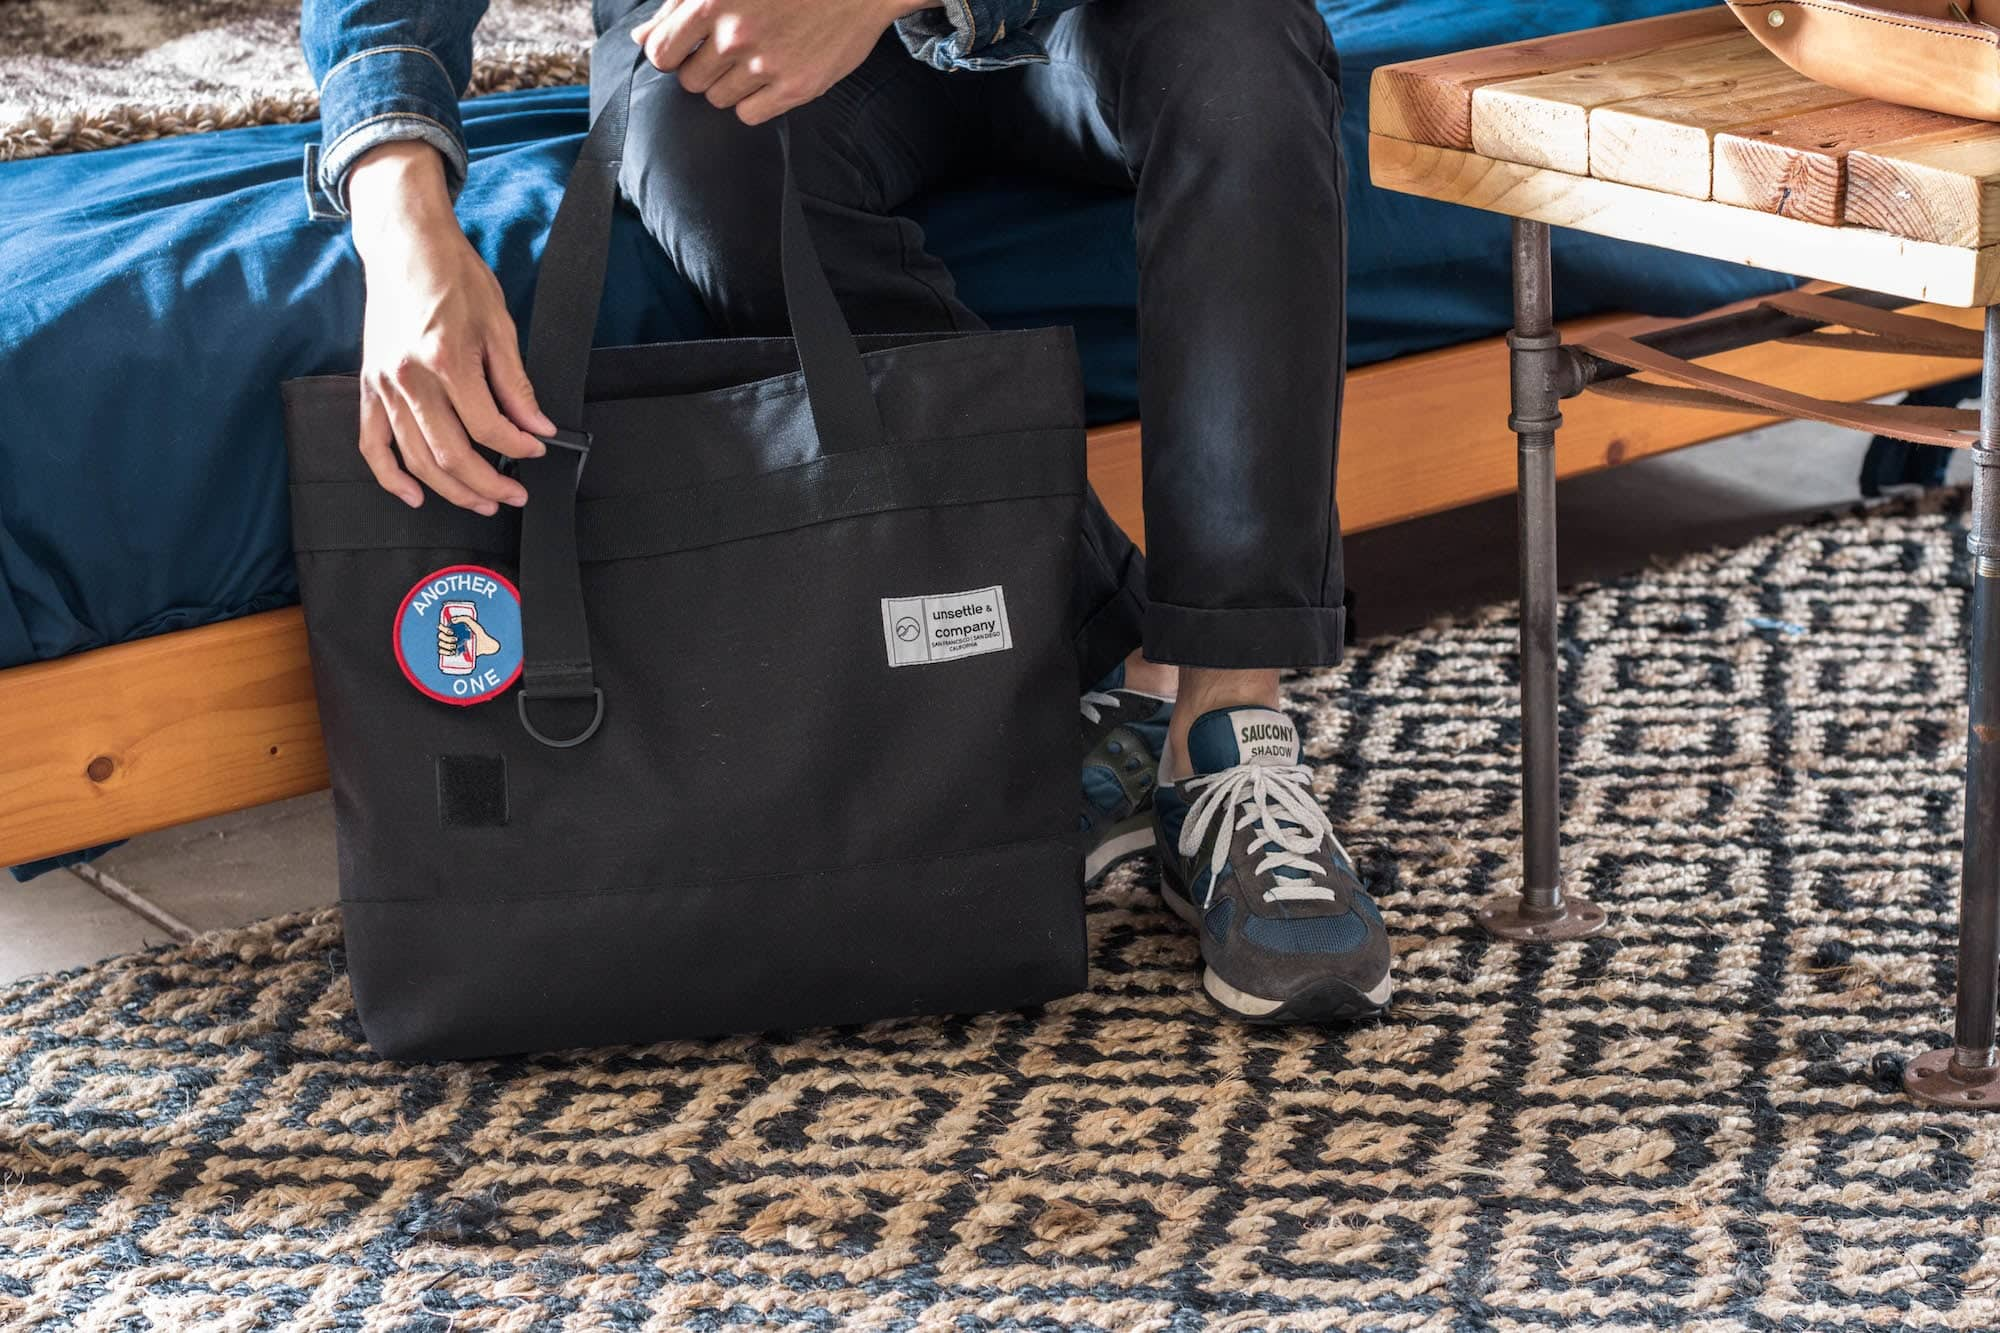 commuter tote bag collector lifestyle 2